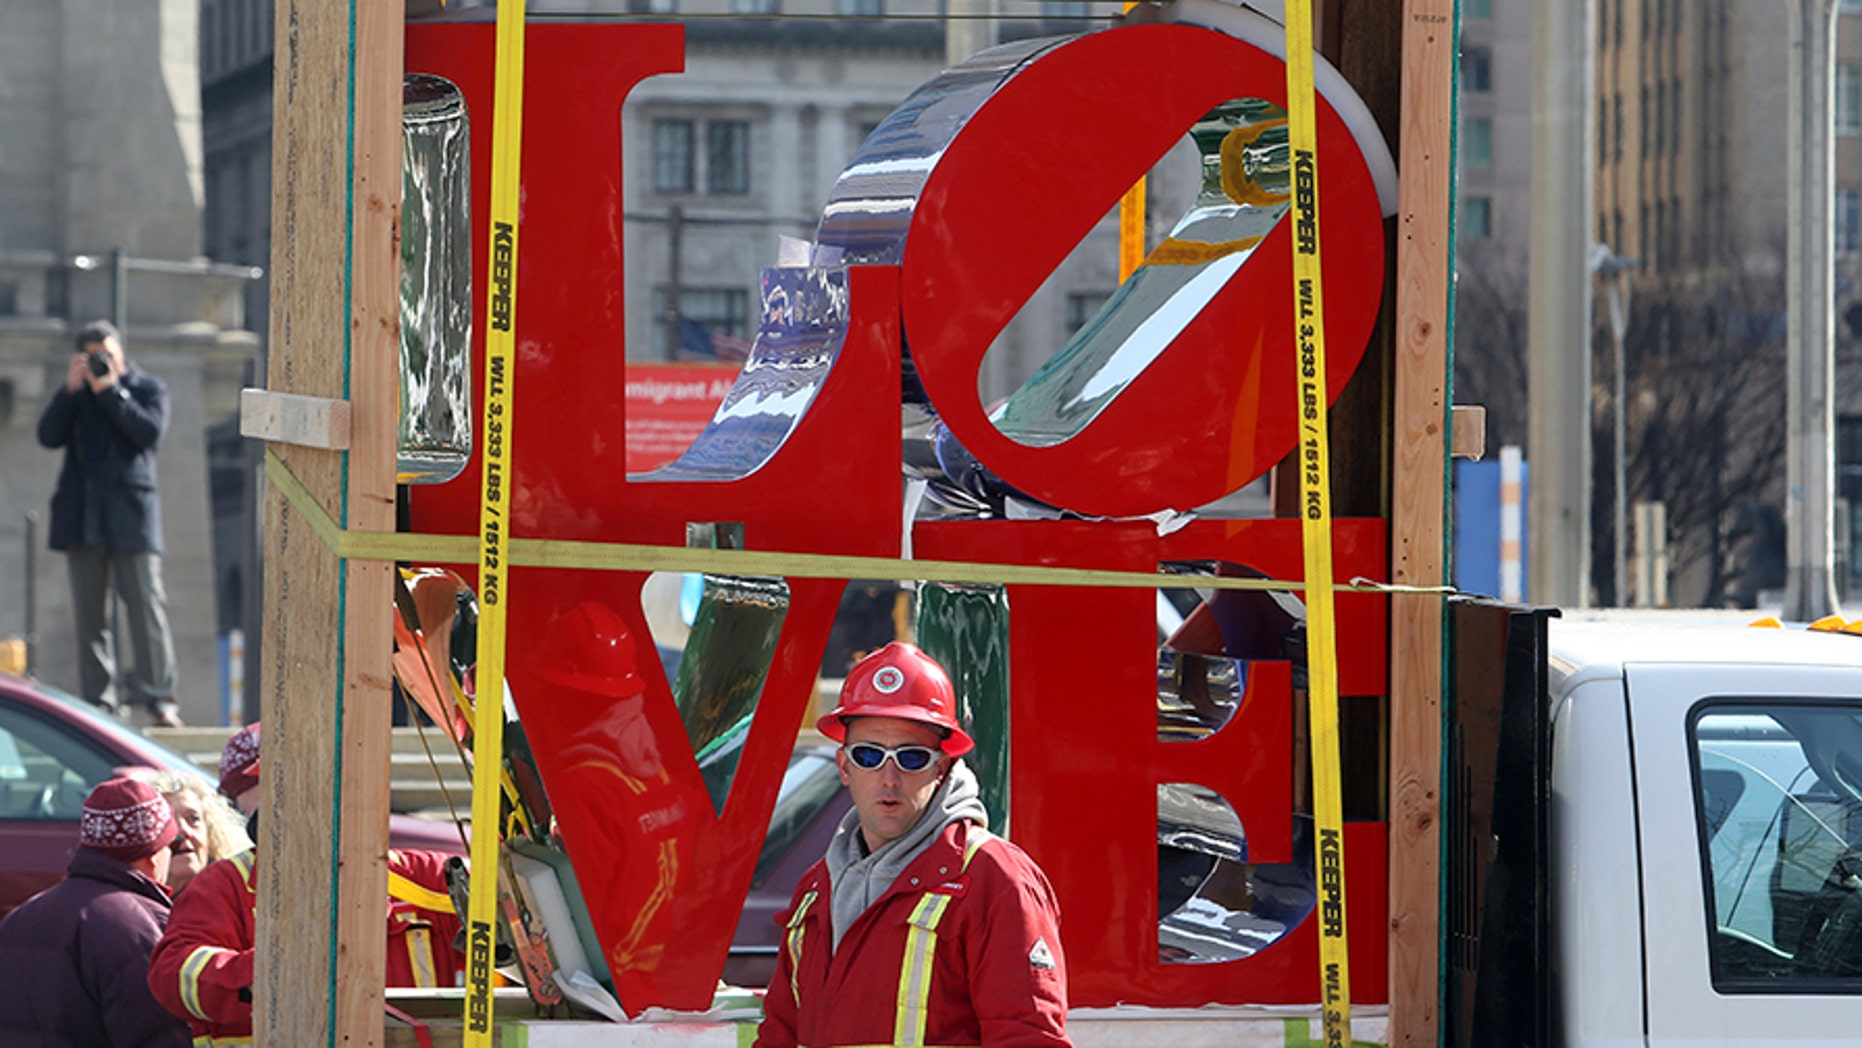 """""""LOVE"""", the famous 1976 Robert Indiana sculpture, is parked in front of John F. Kennedy Plaza before reinstallation, Tuesday Feb. 13, 2018 in Philadelphia. The sculpture was removed for repairs a year ago while its home, the downtown park, was going through a renovation. (AP Photo/Jacqueline Larma)"""